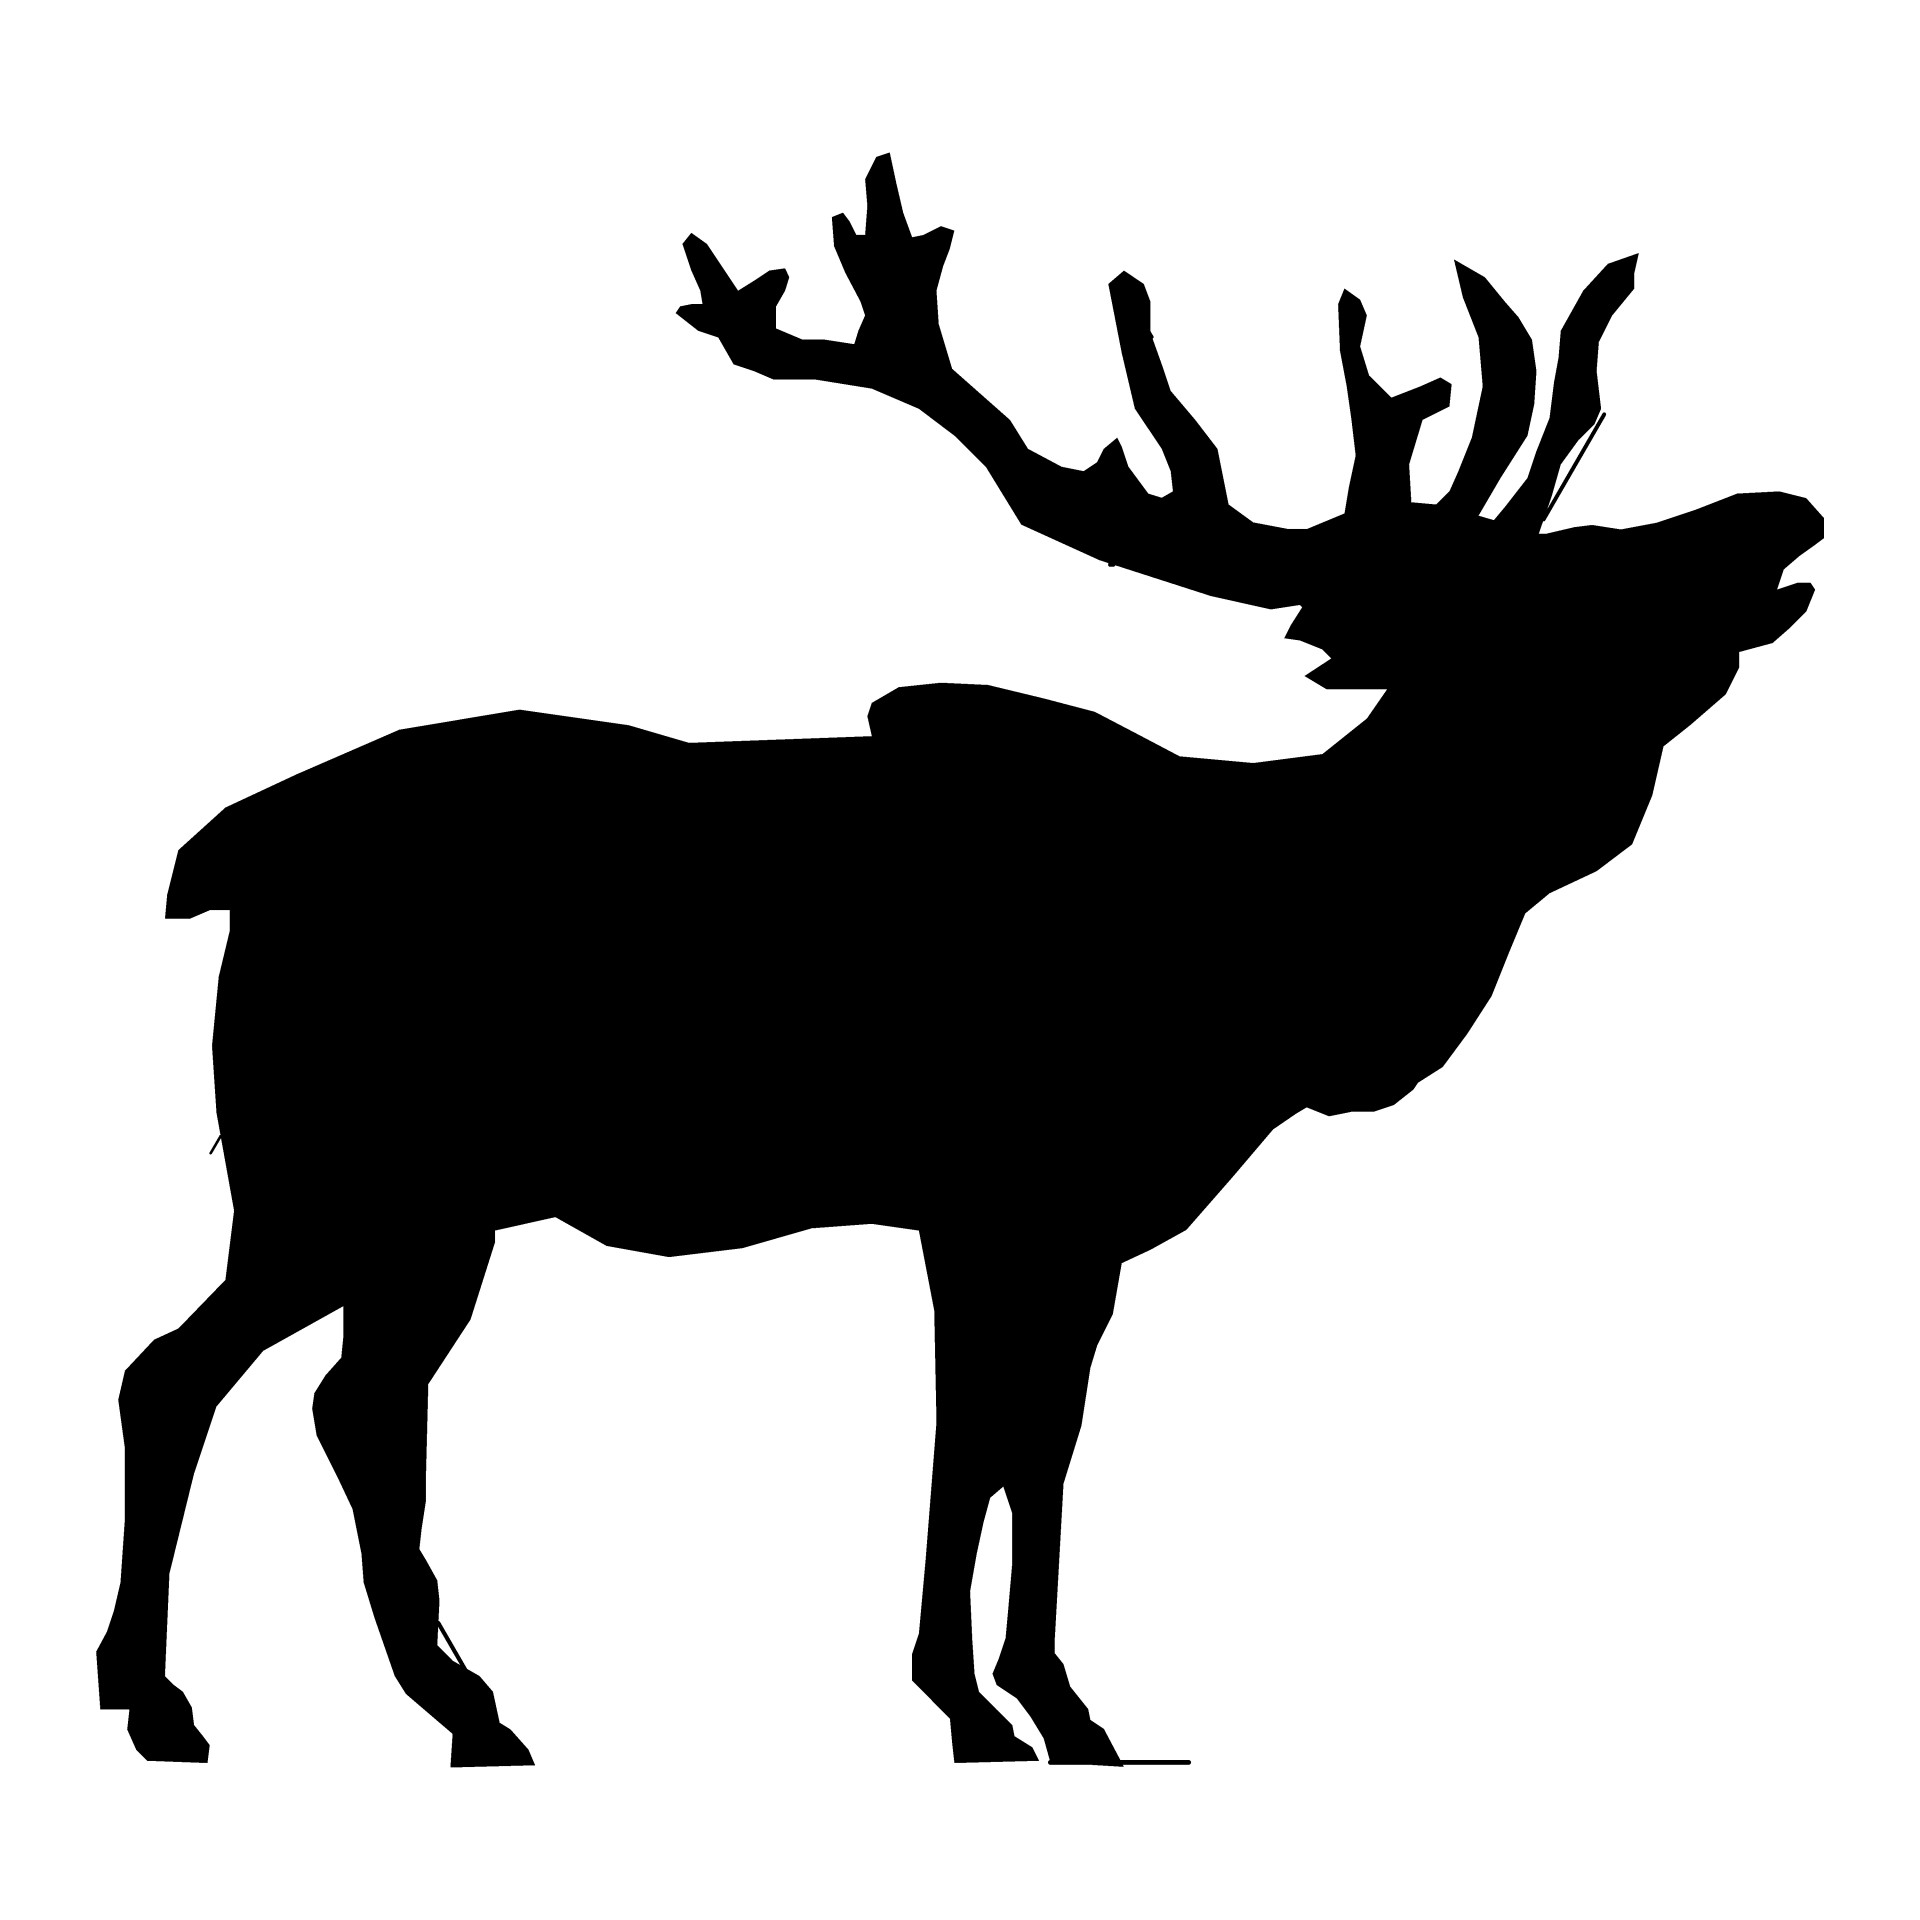 1920x1920 Elk Silhouette Drawing 01 Free Stock Photo